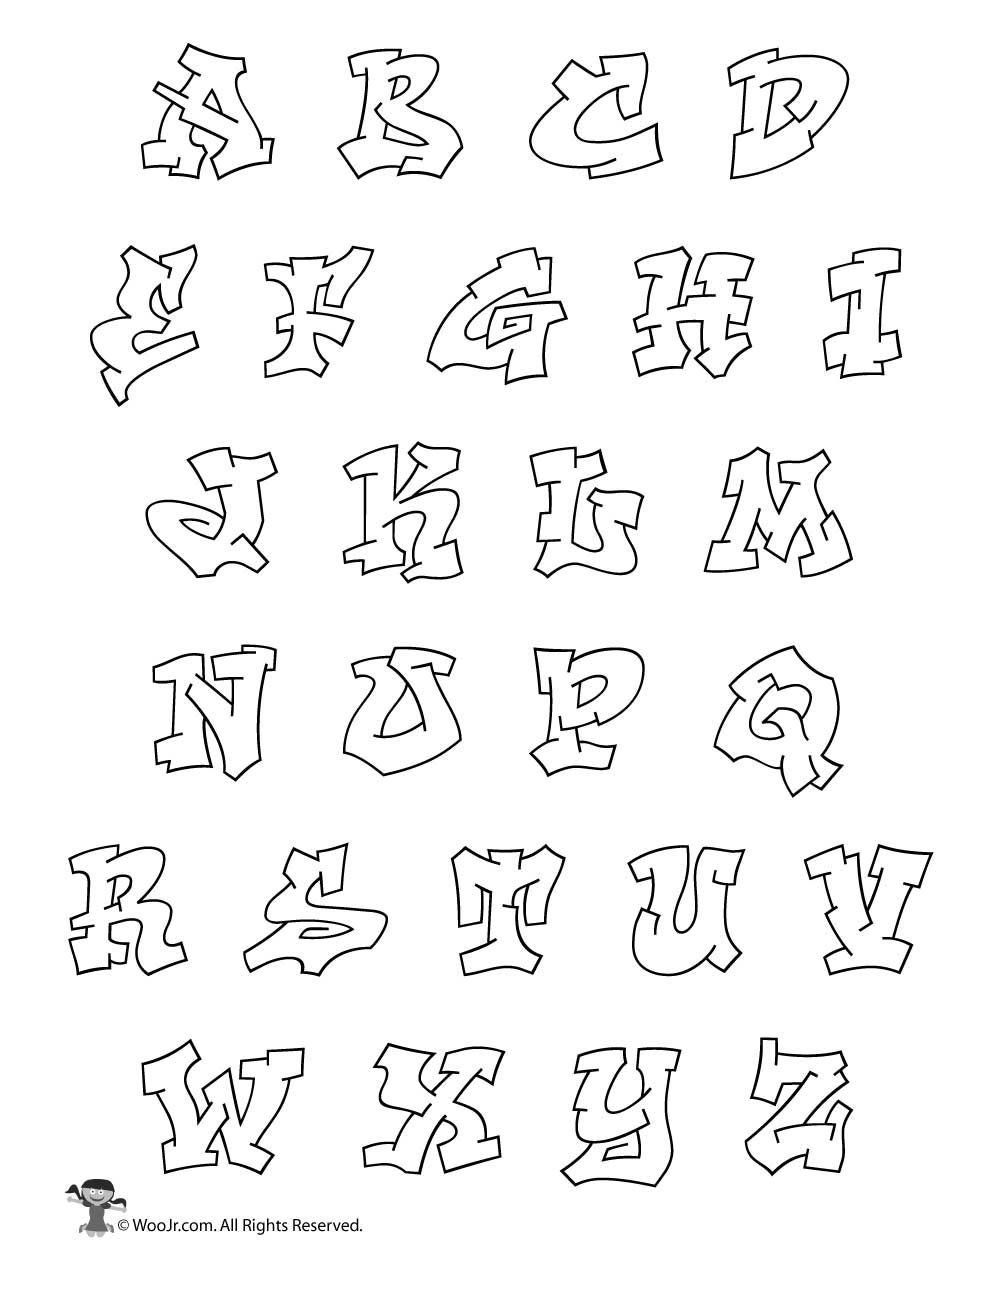 Printable Graffiti Bubble Letters Alphabet Woo Jr Kids Activities